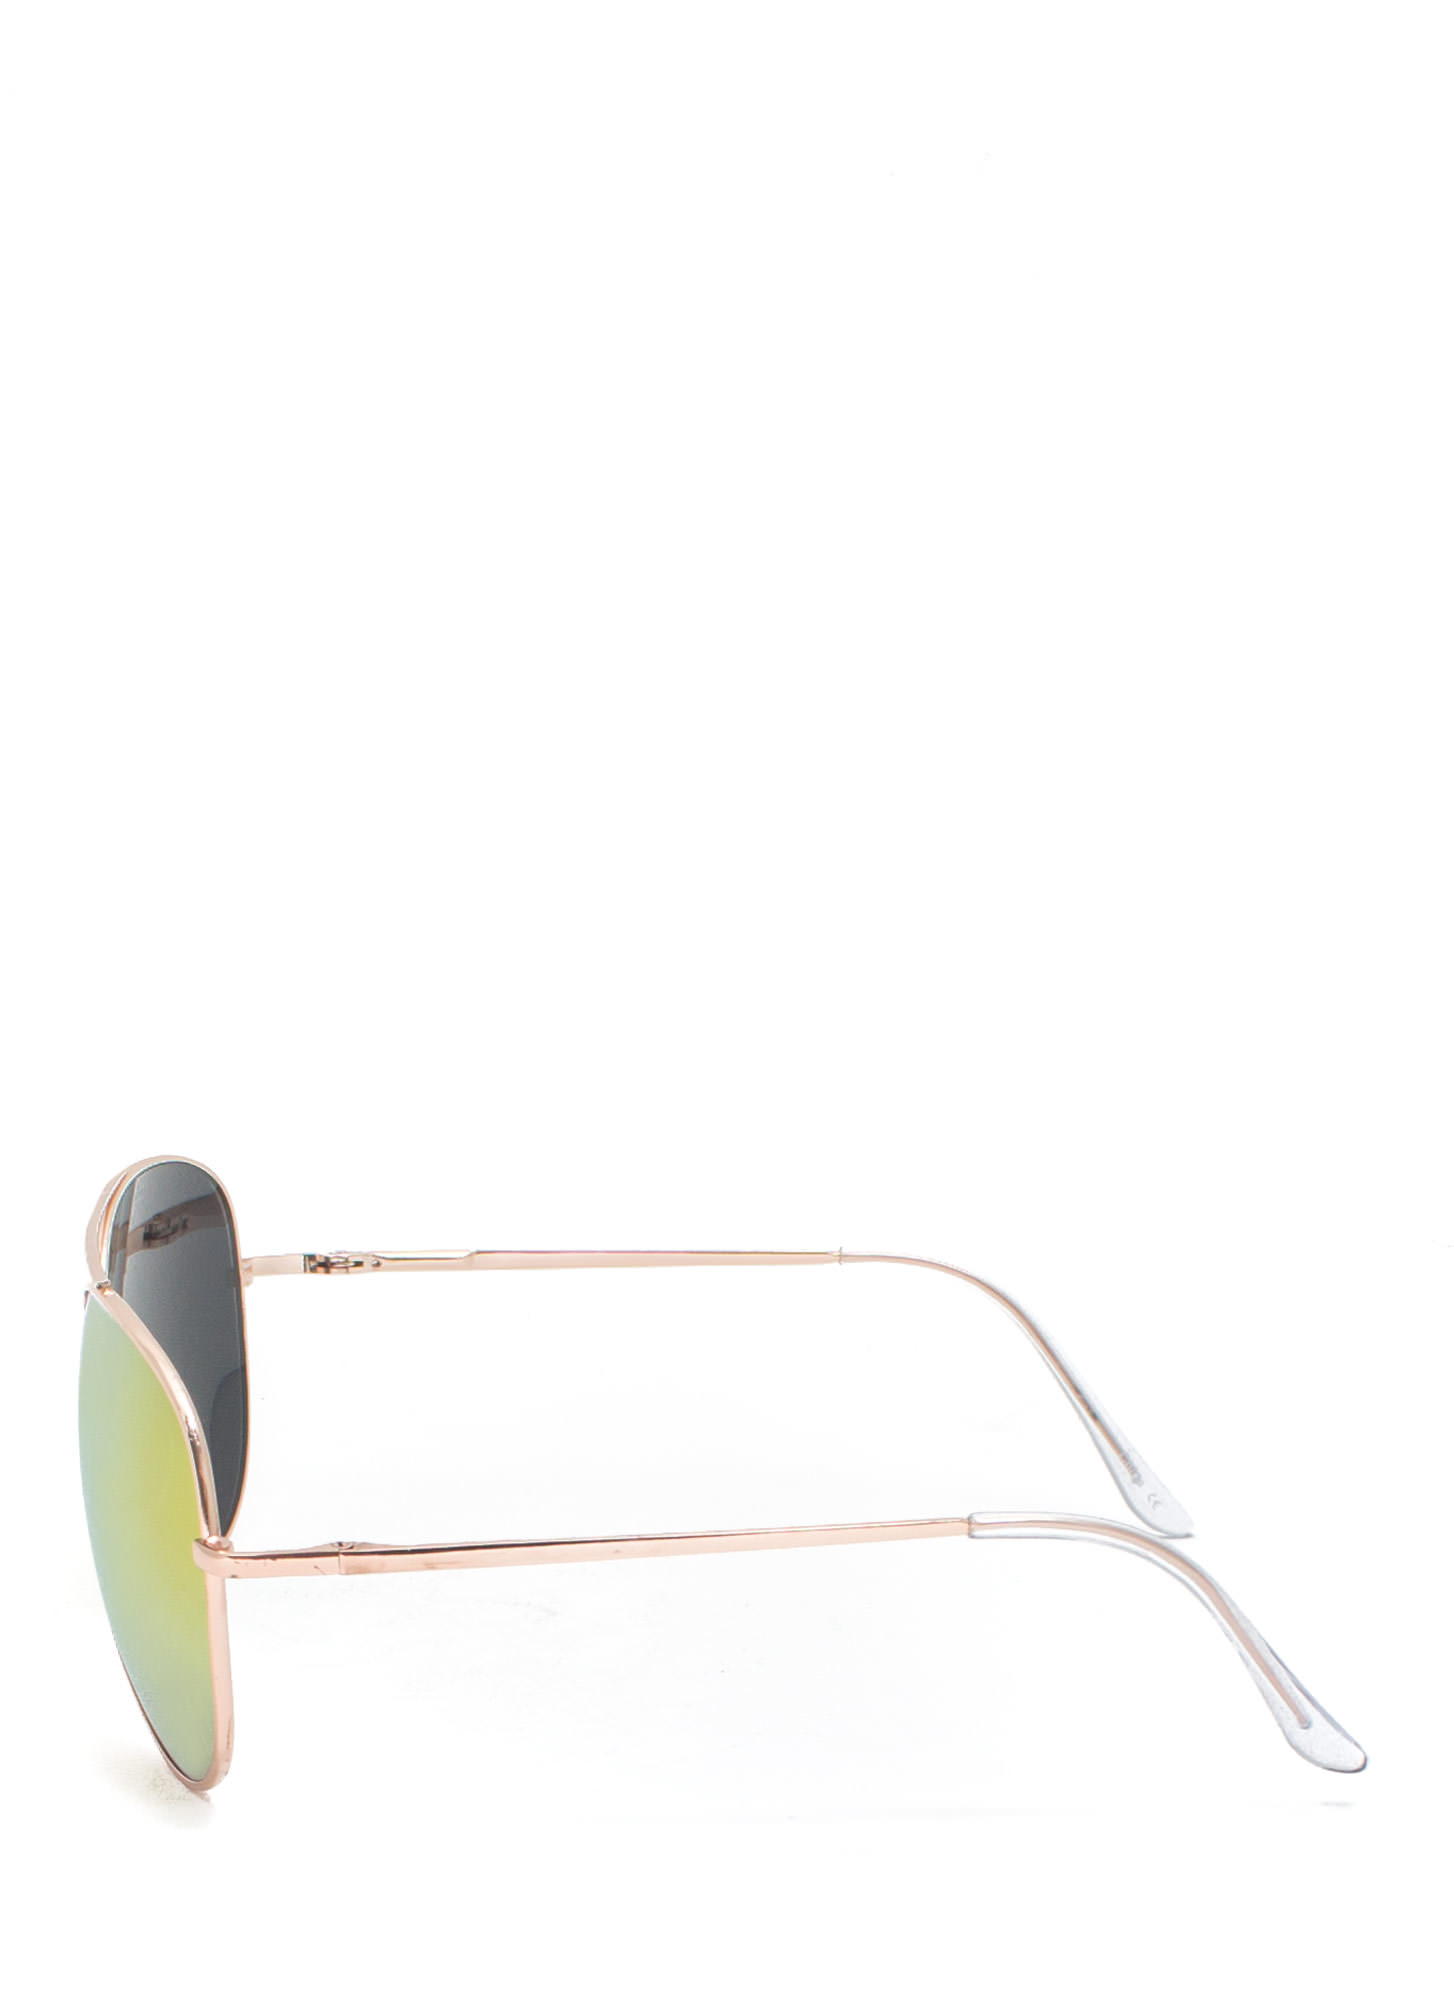 De Colores Sunglasses ORANGEGLD